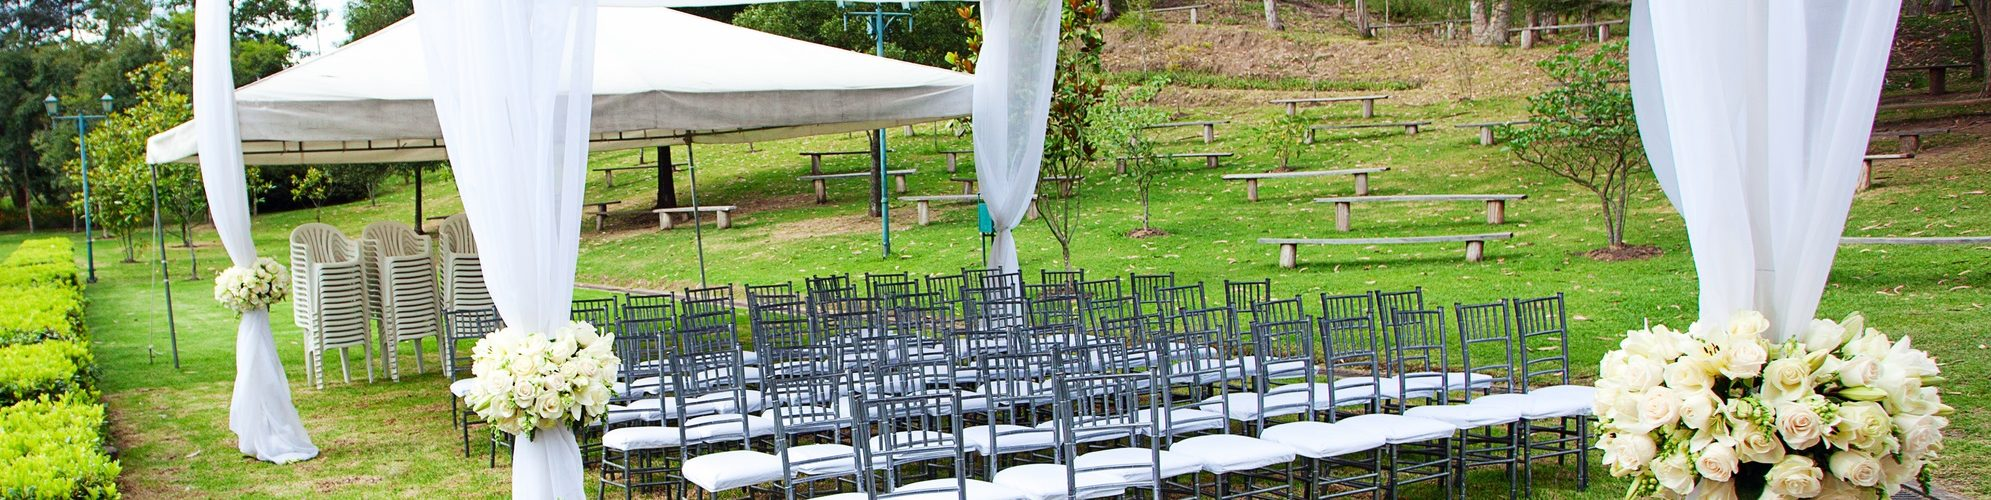 Table and Chair Rentals Singapore | Cheap and Affordable